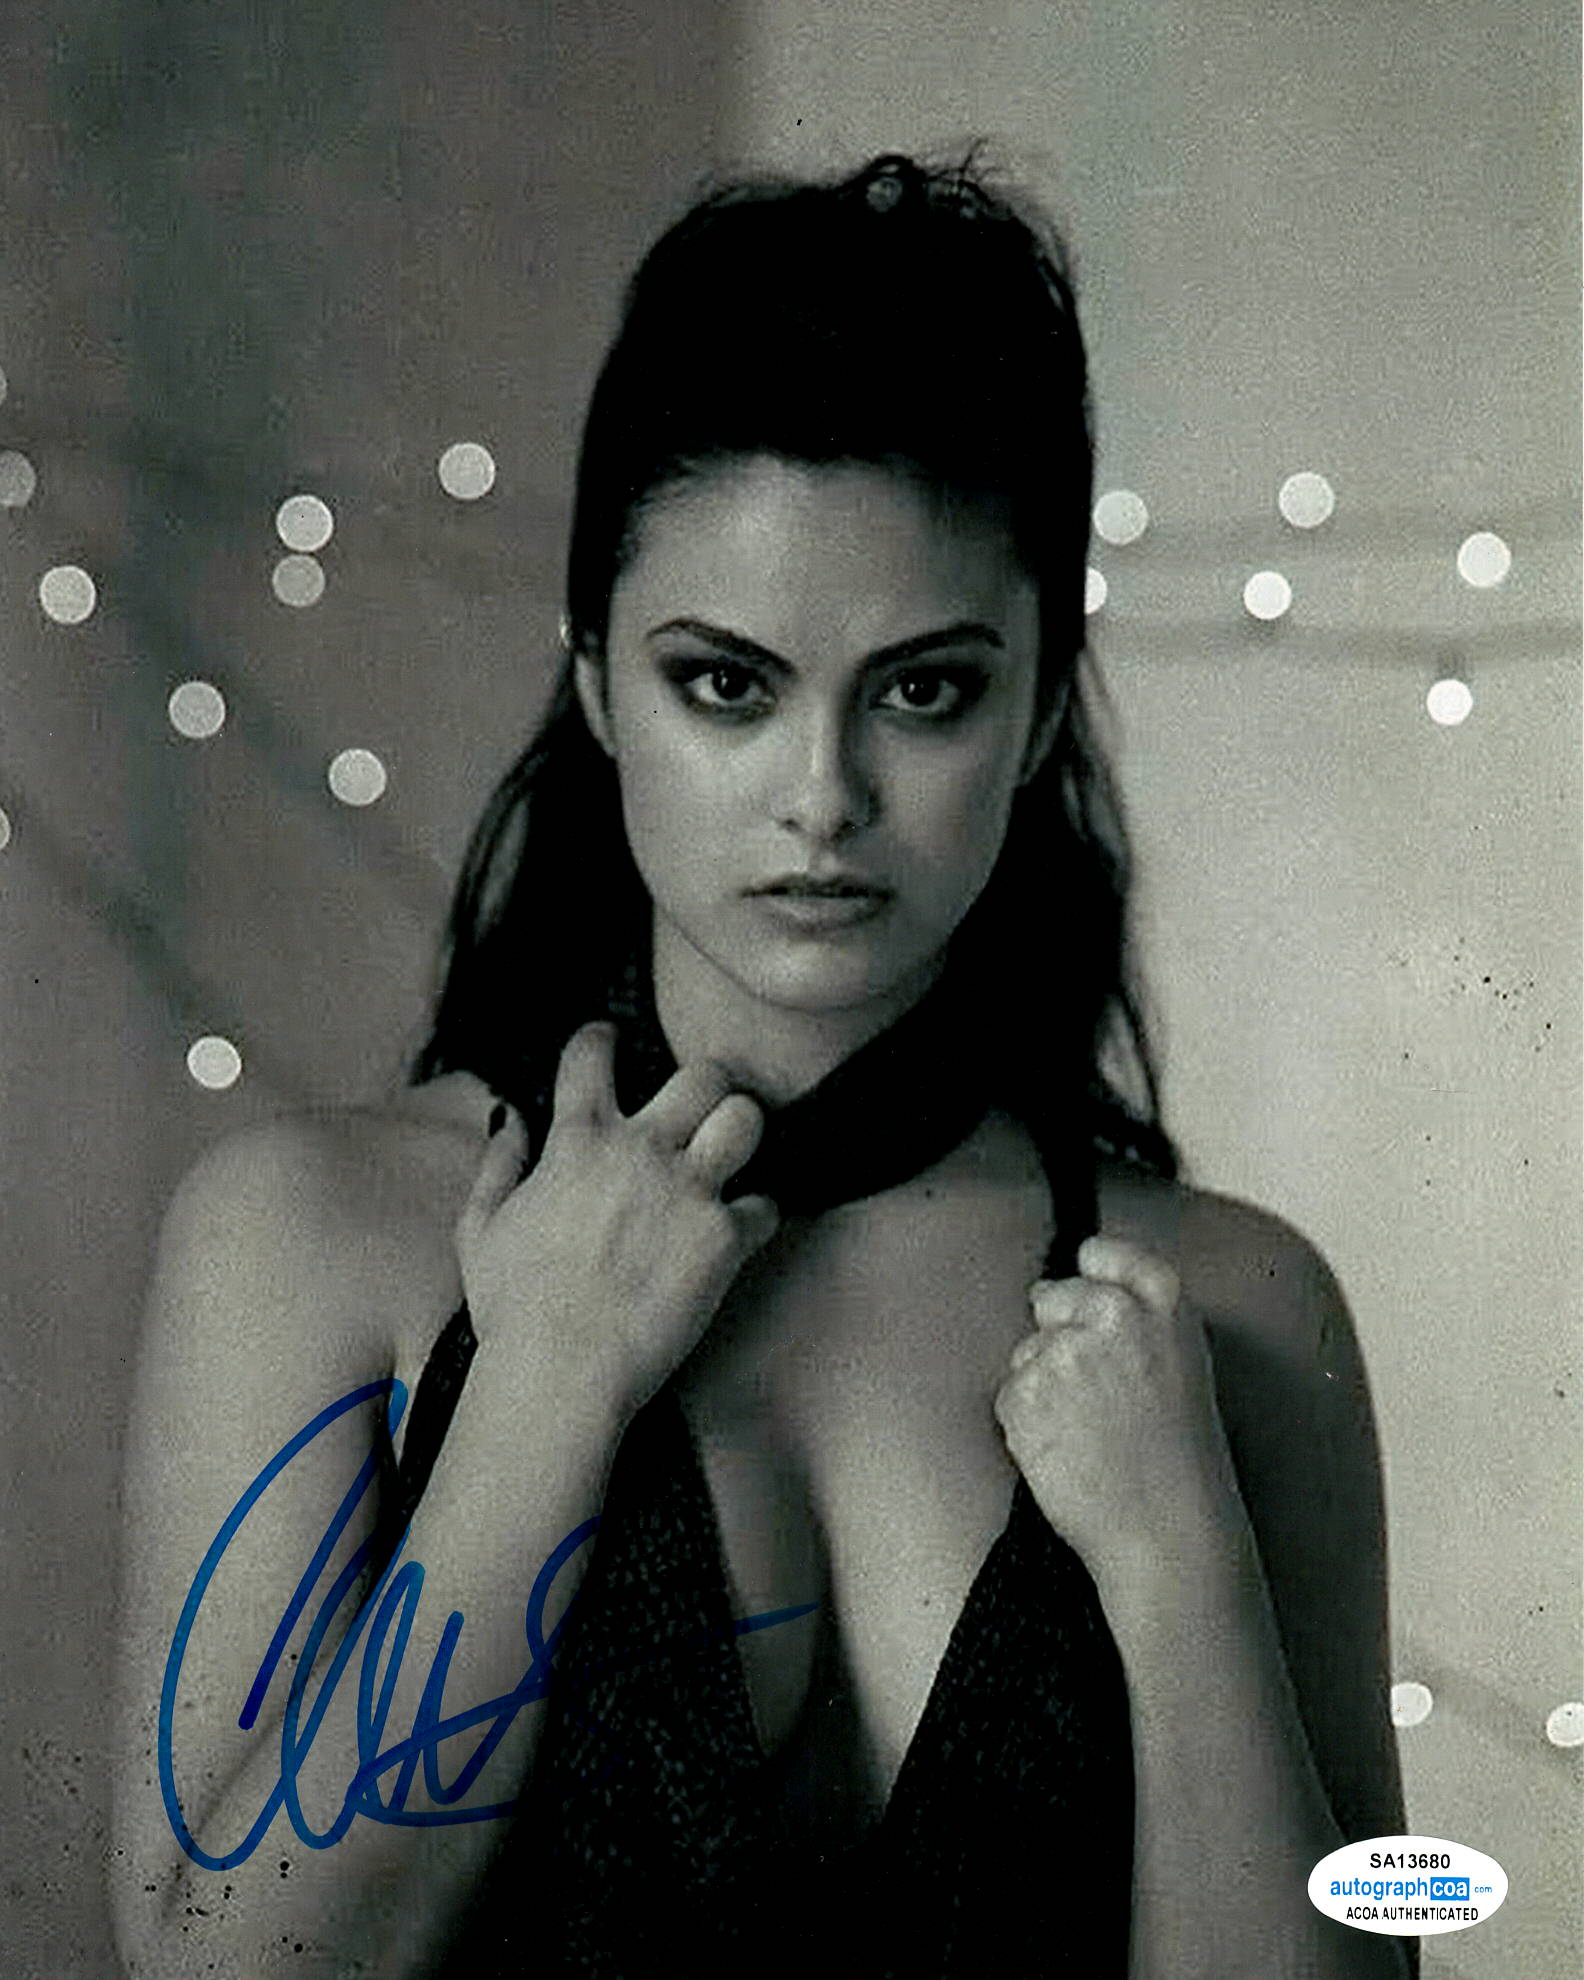 Camila Mendes Riverdale Signed Autograph 8x10 Photo ACOA #18 - Outlaw Hobbies Authentic Autographs